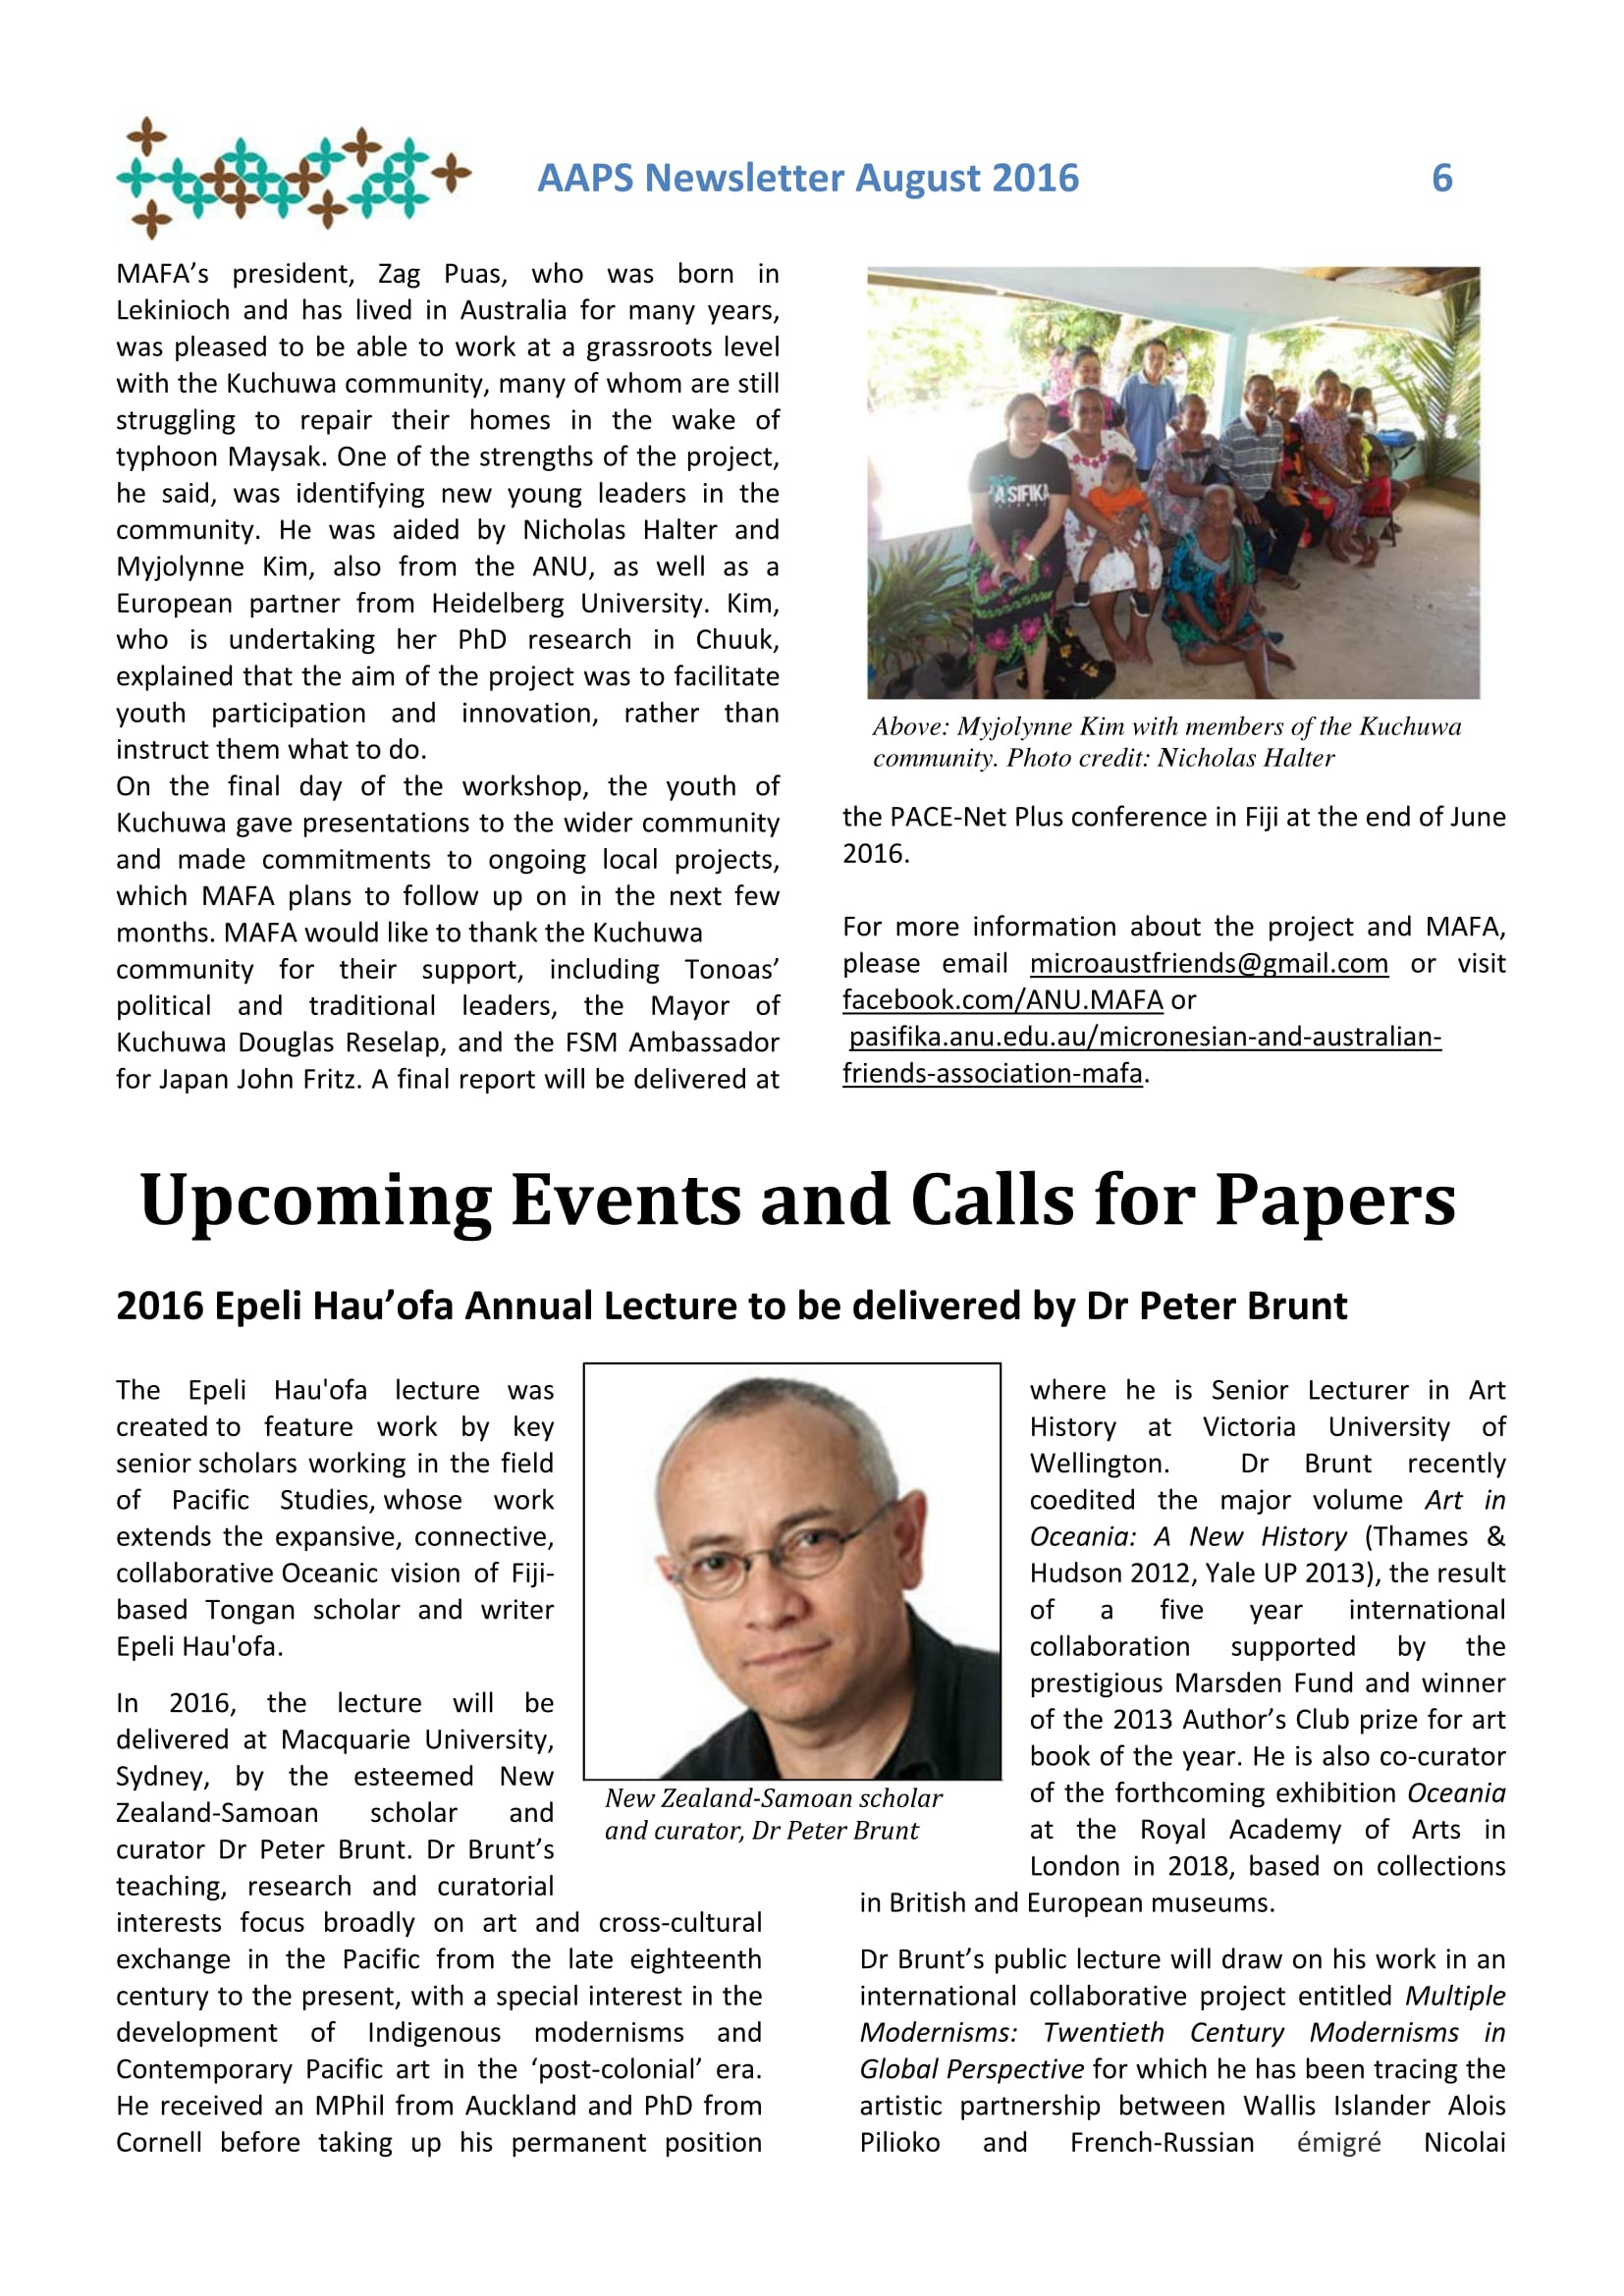 AAPS newsletter August 2016-06